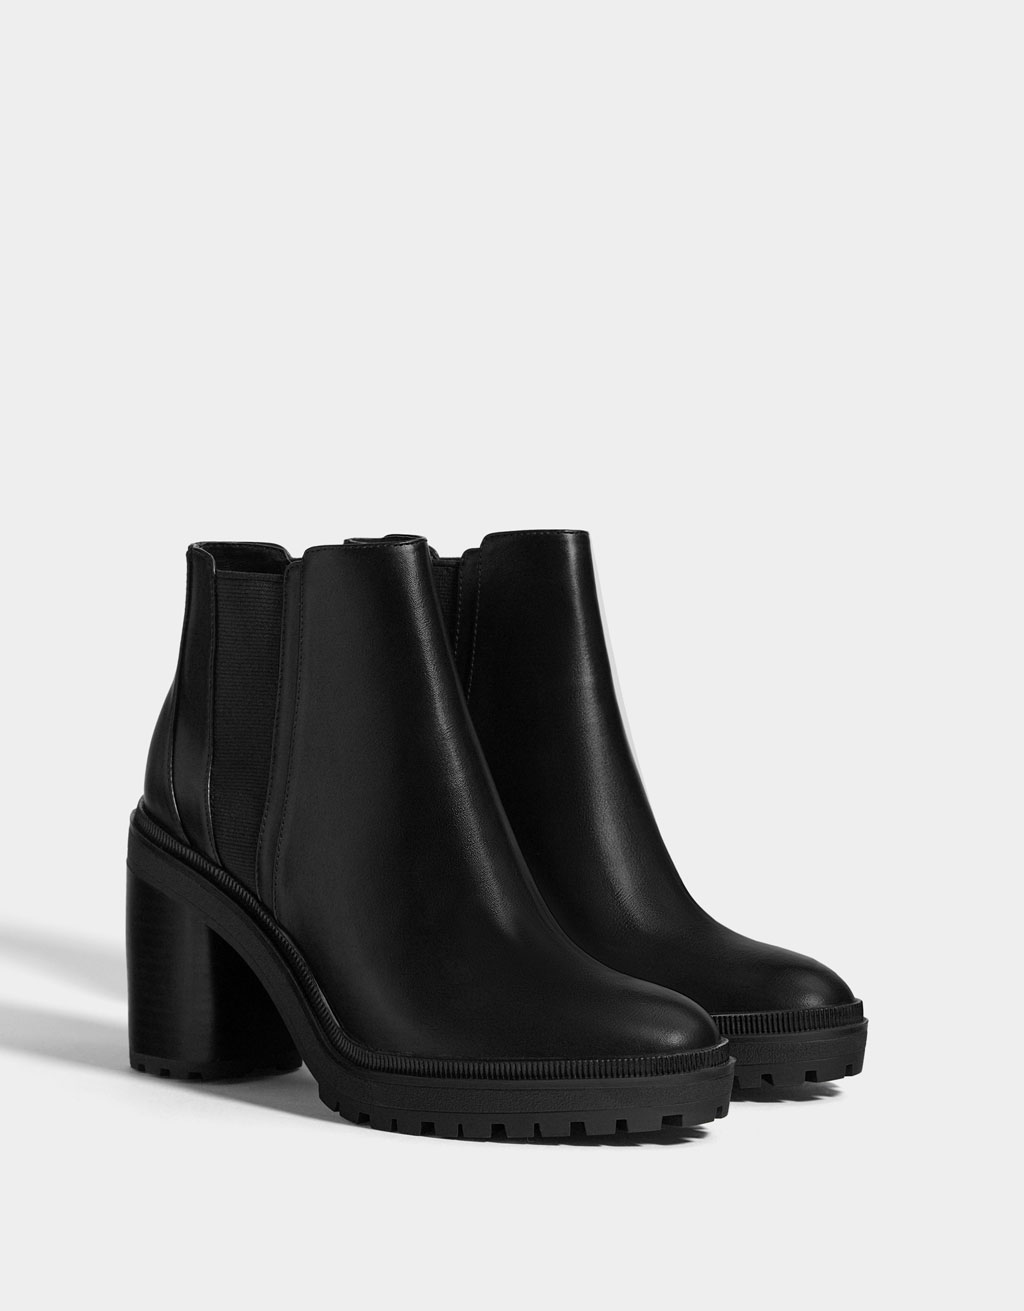 Platform ankle boots with elastic panels